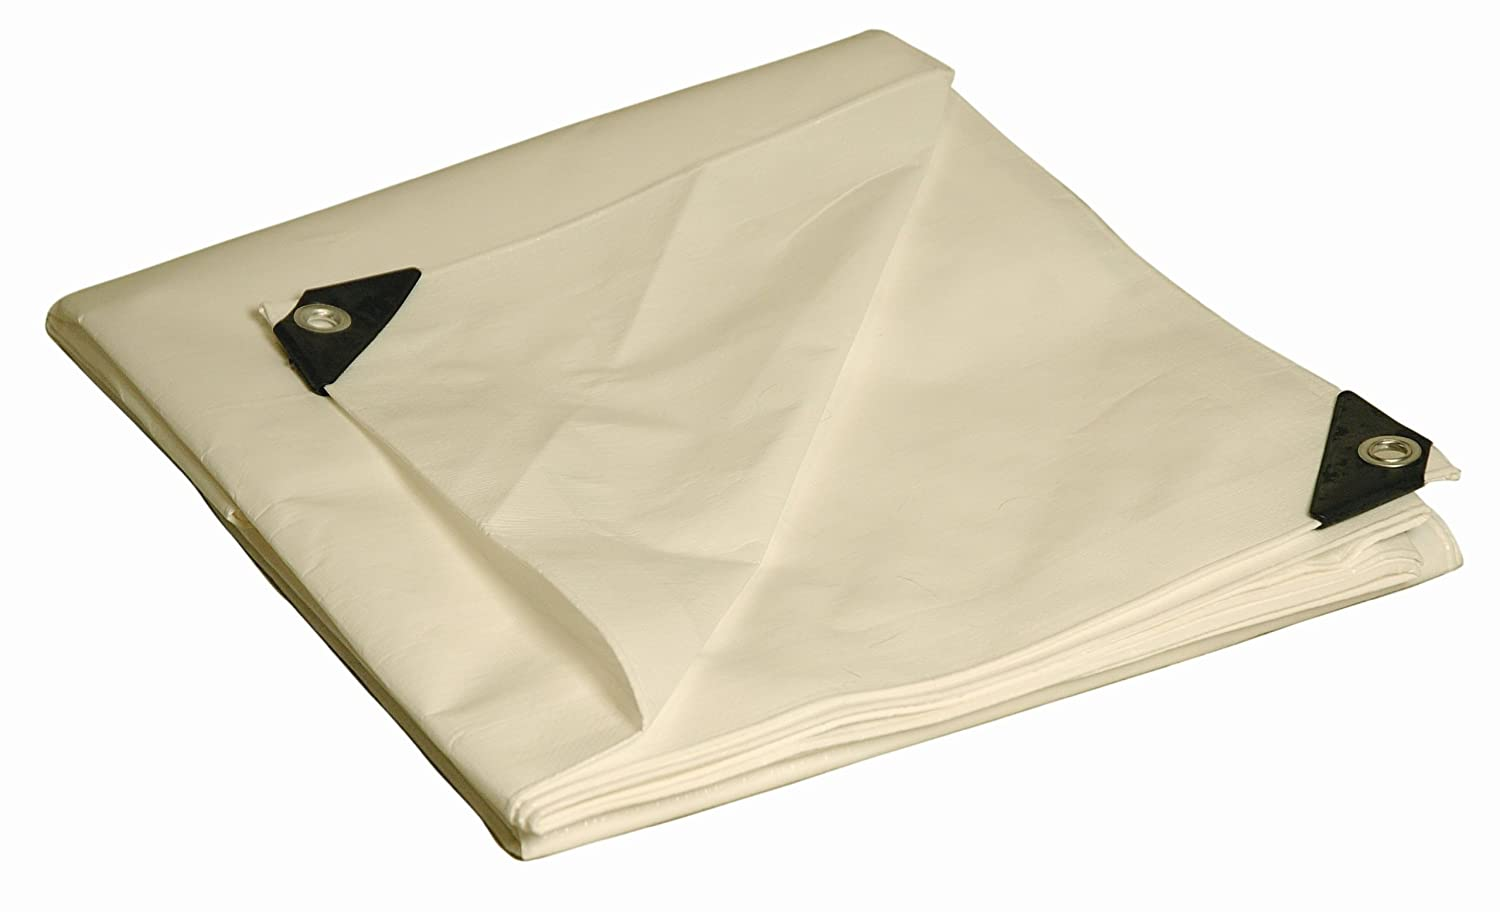 8' x 10' Dry Top Heavy Duty White Full Size 10-mil Poly Tarp item #308105 20403